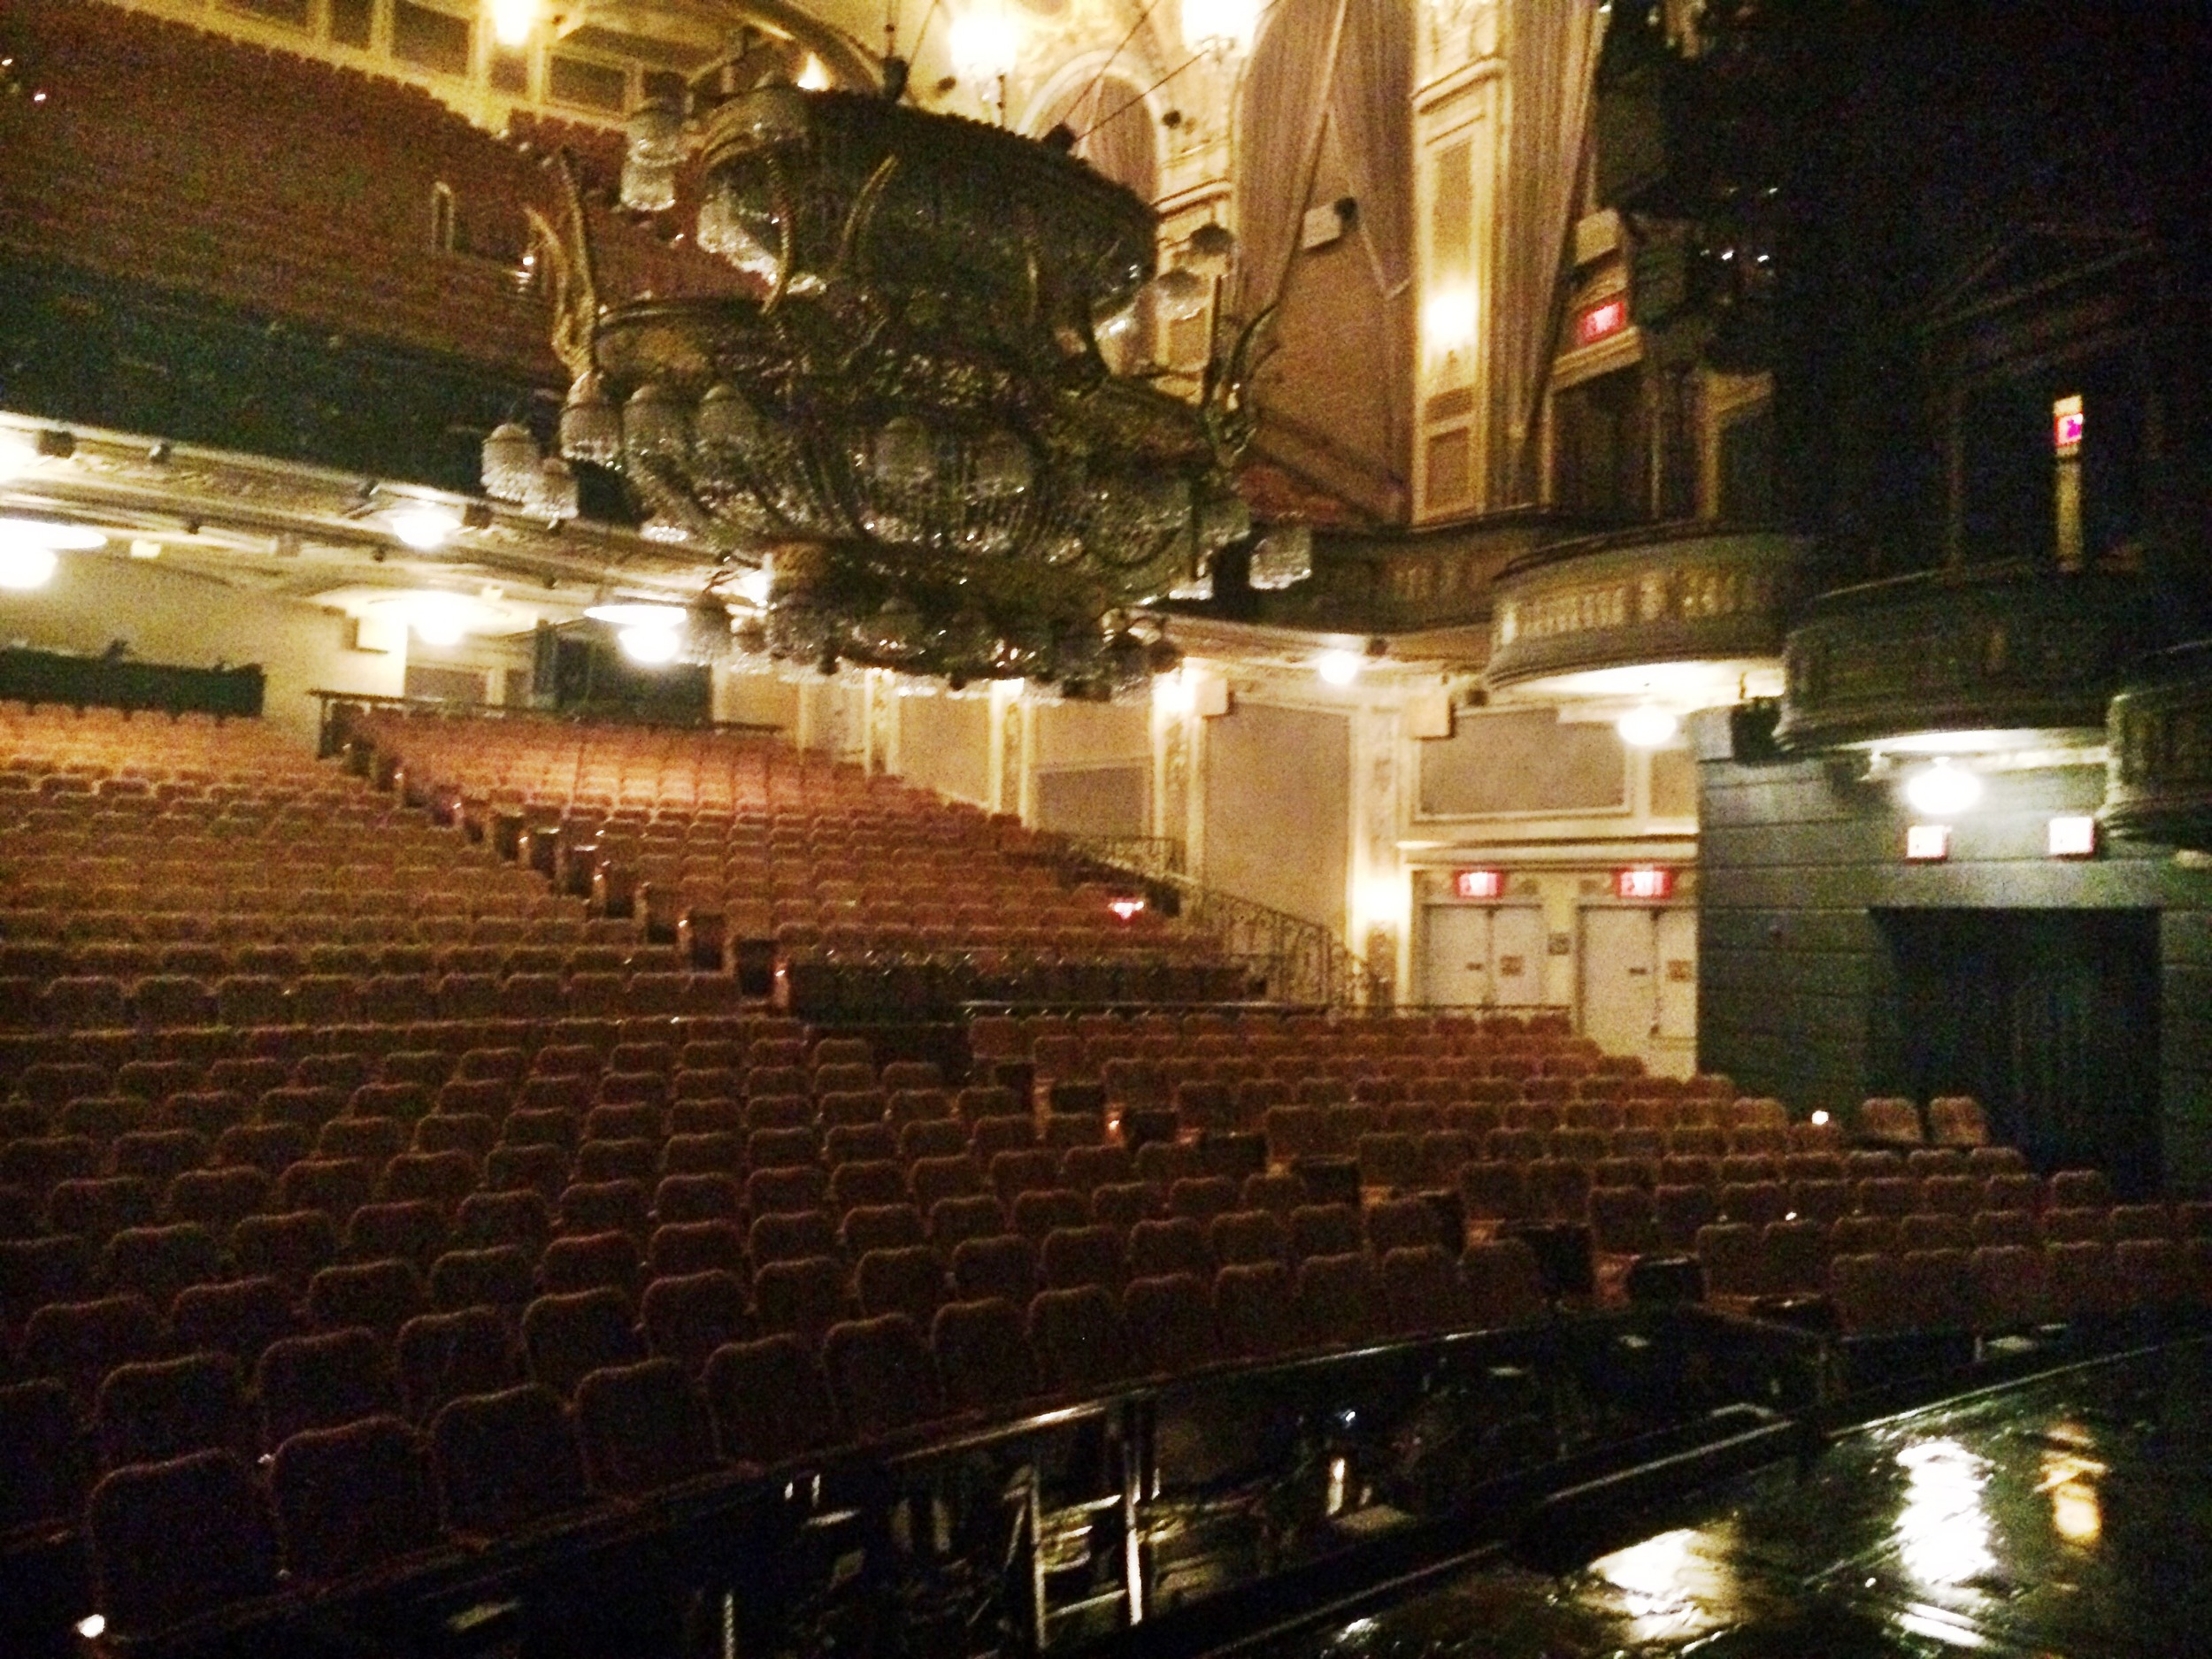 View from the stage; check out that amazing chandelier!